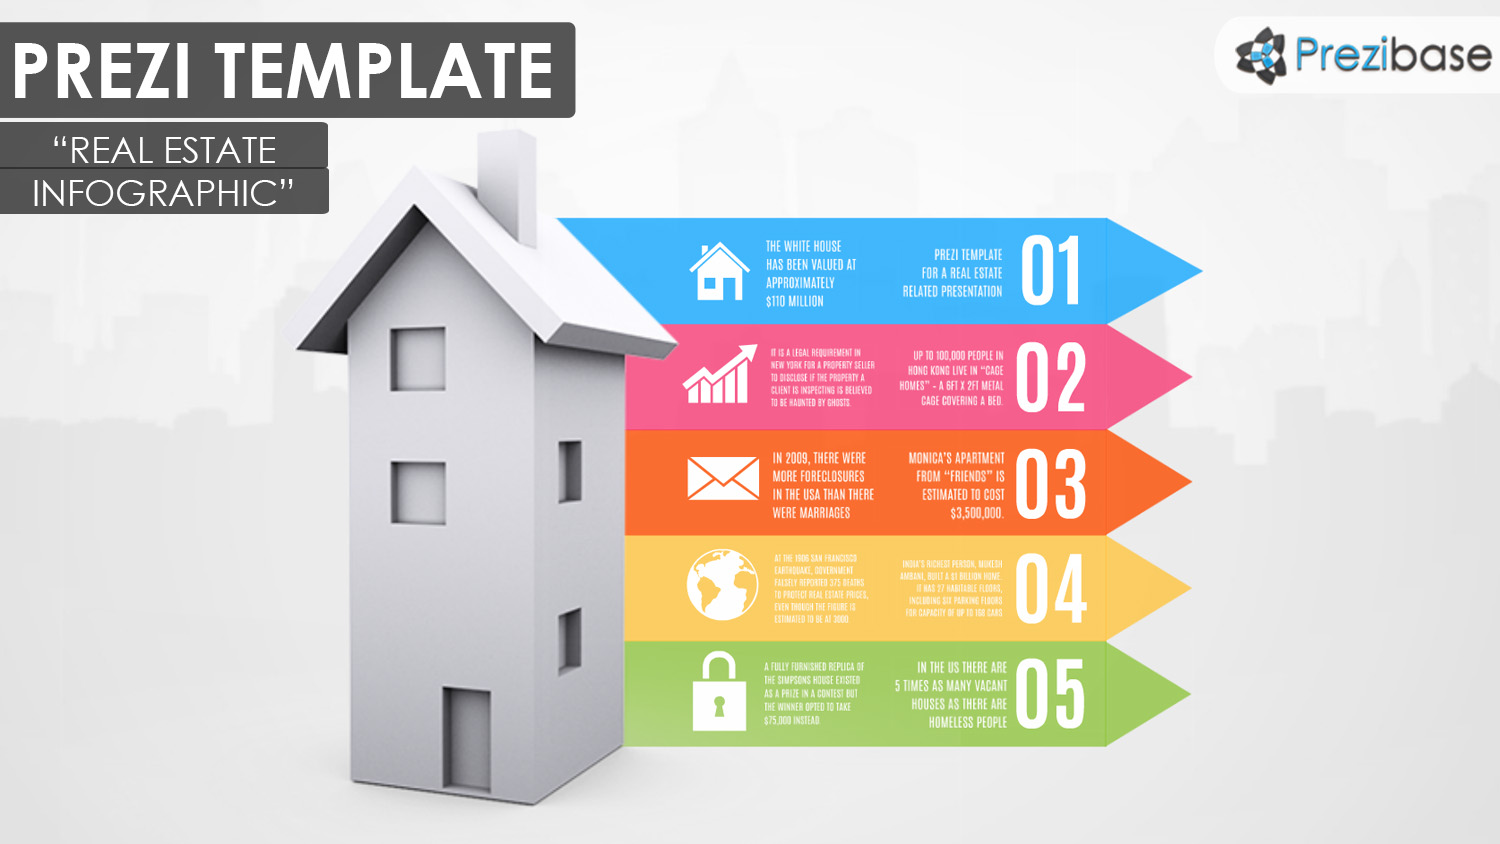 real-estate-3d-house-infographic-diagram-prezi-template.jpg